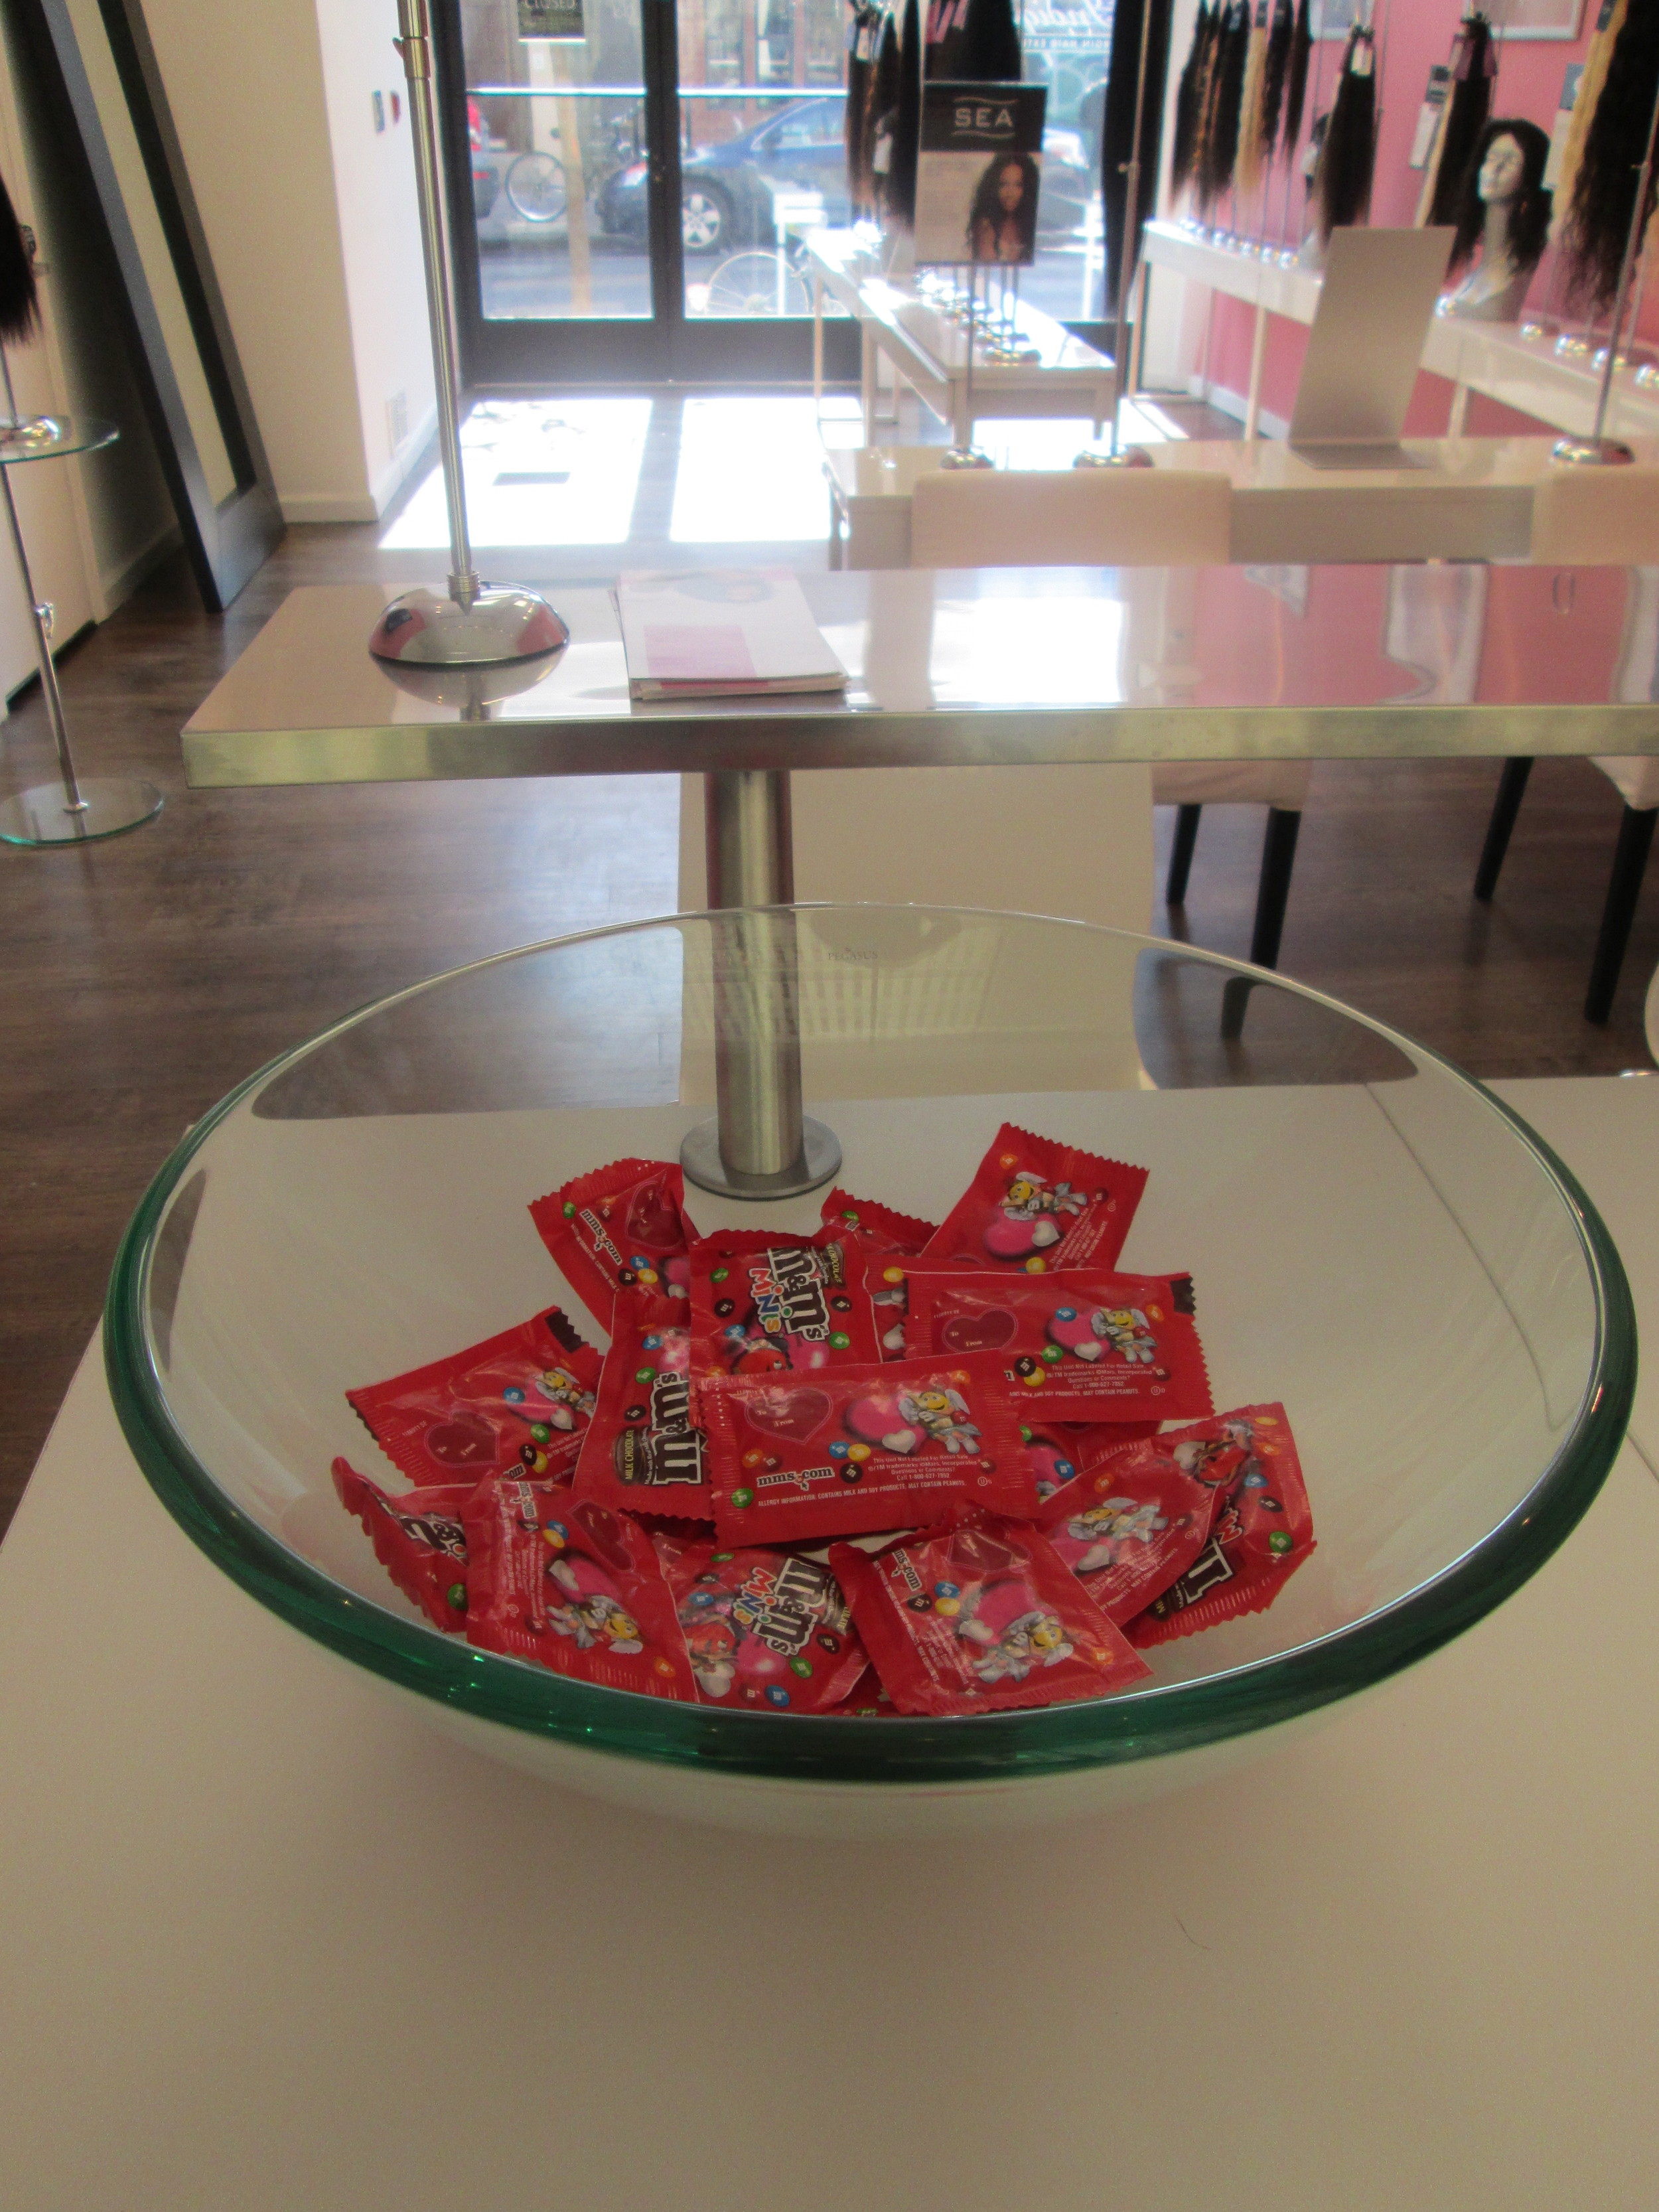 Indique Philly had yummy treats for their clients!